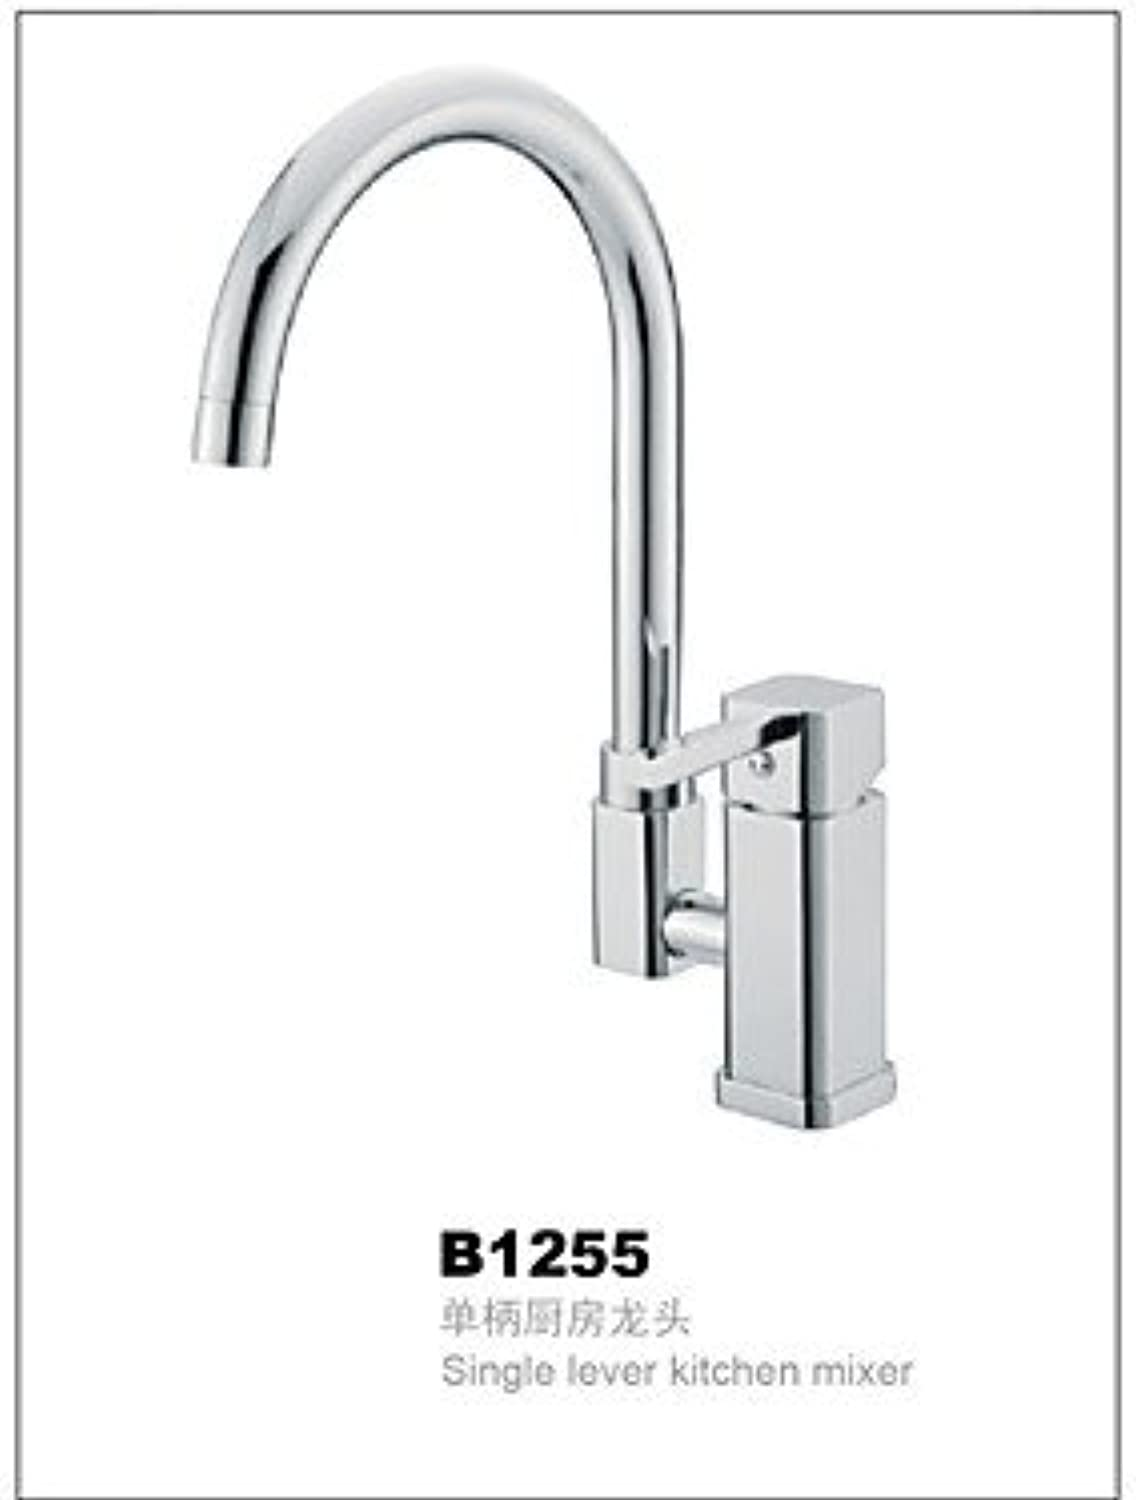 Lozse 360o redation Polished Chrome Bathroom Basin tap Sink Mixer Water Tap & Hoses